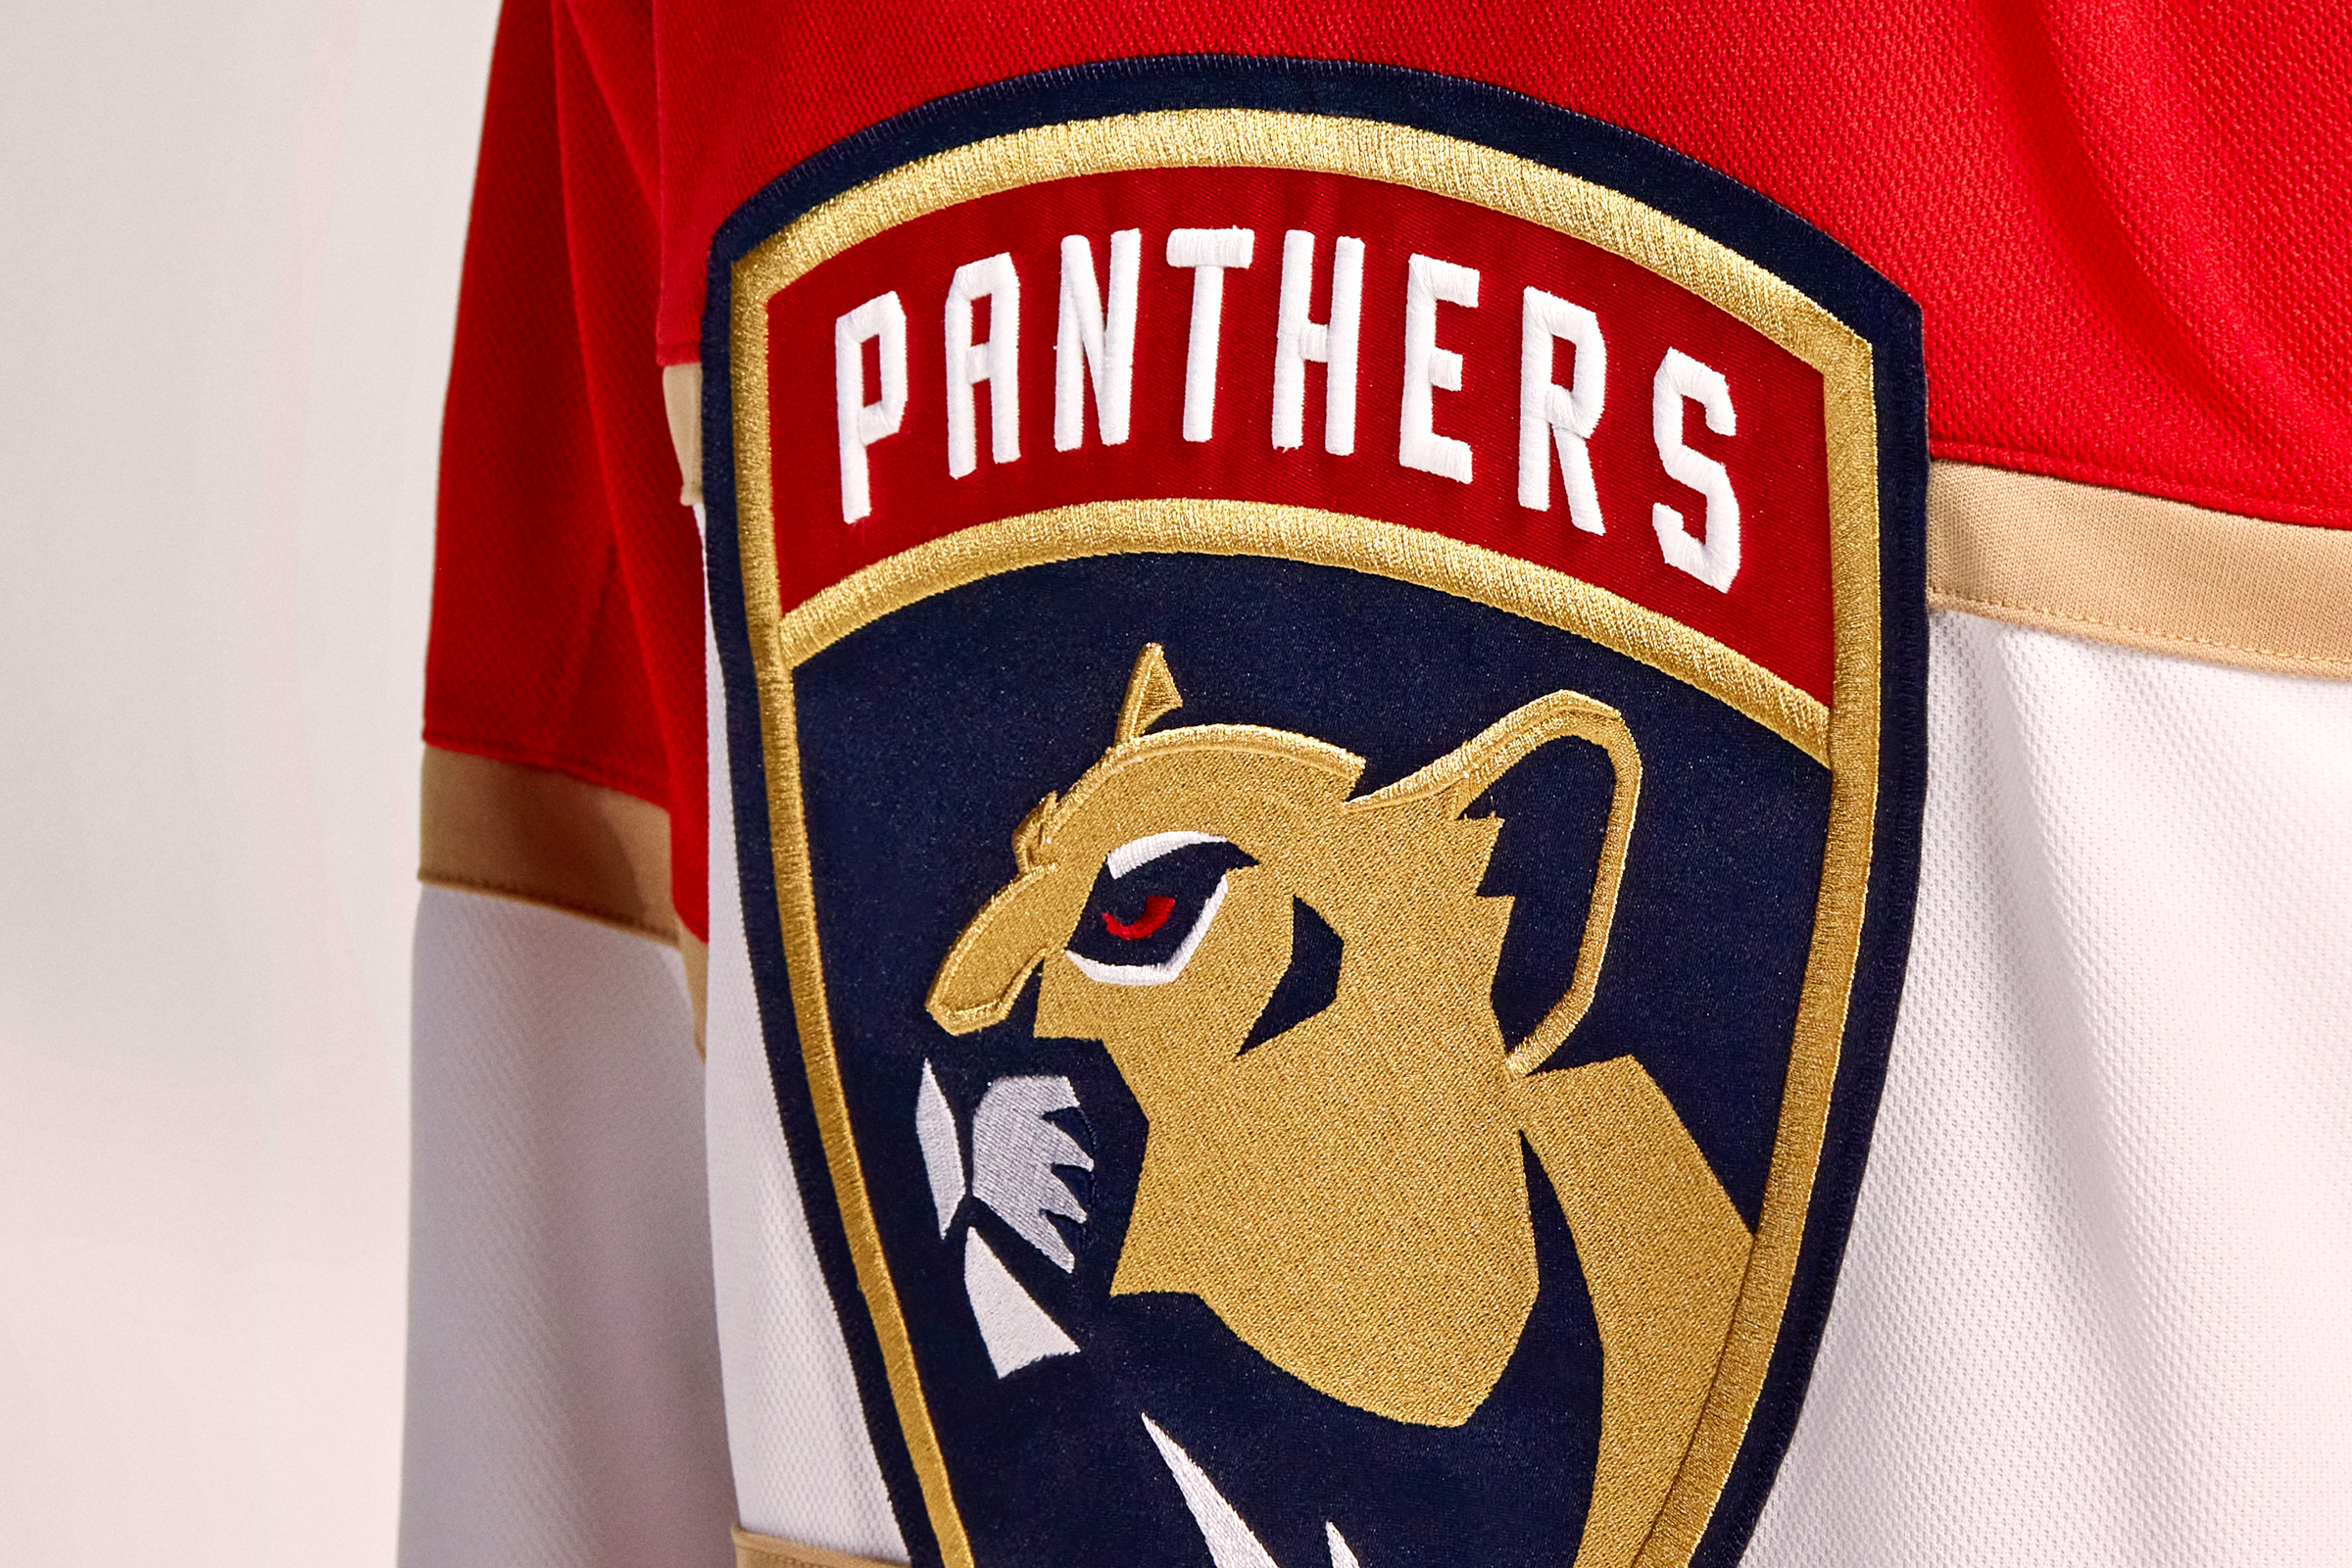 The Panthers' uniform.